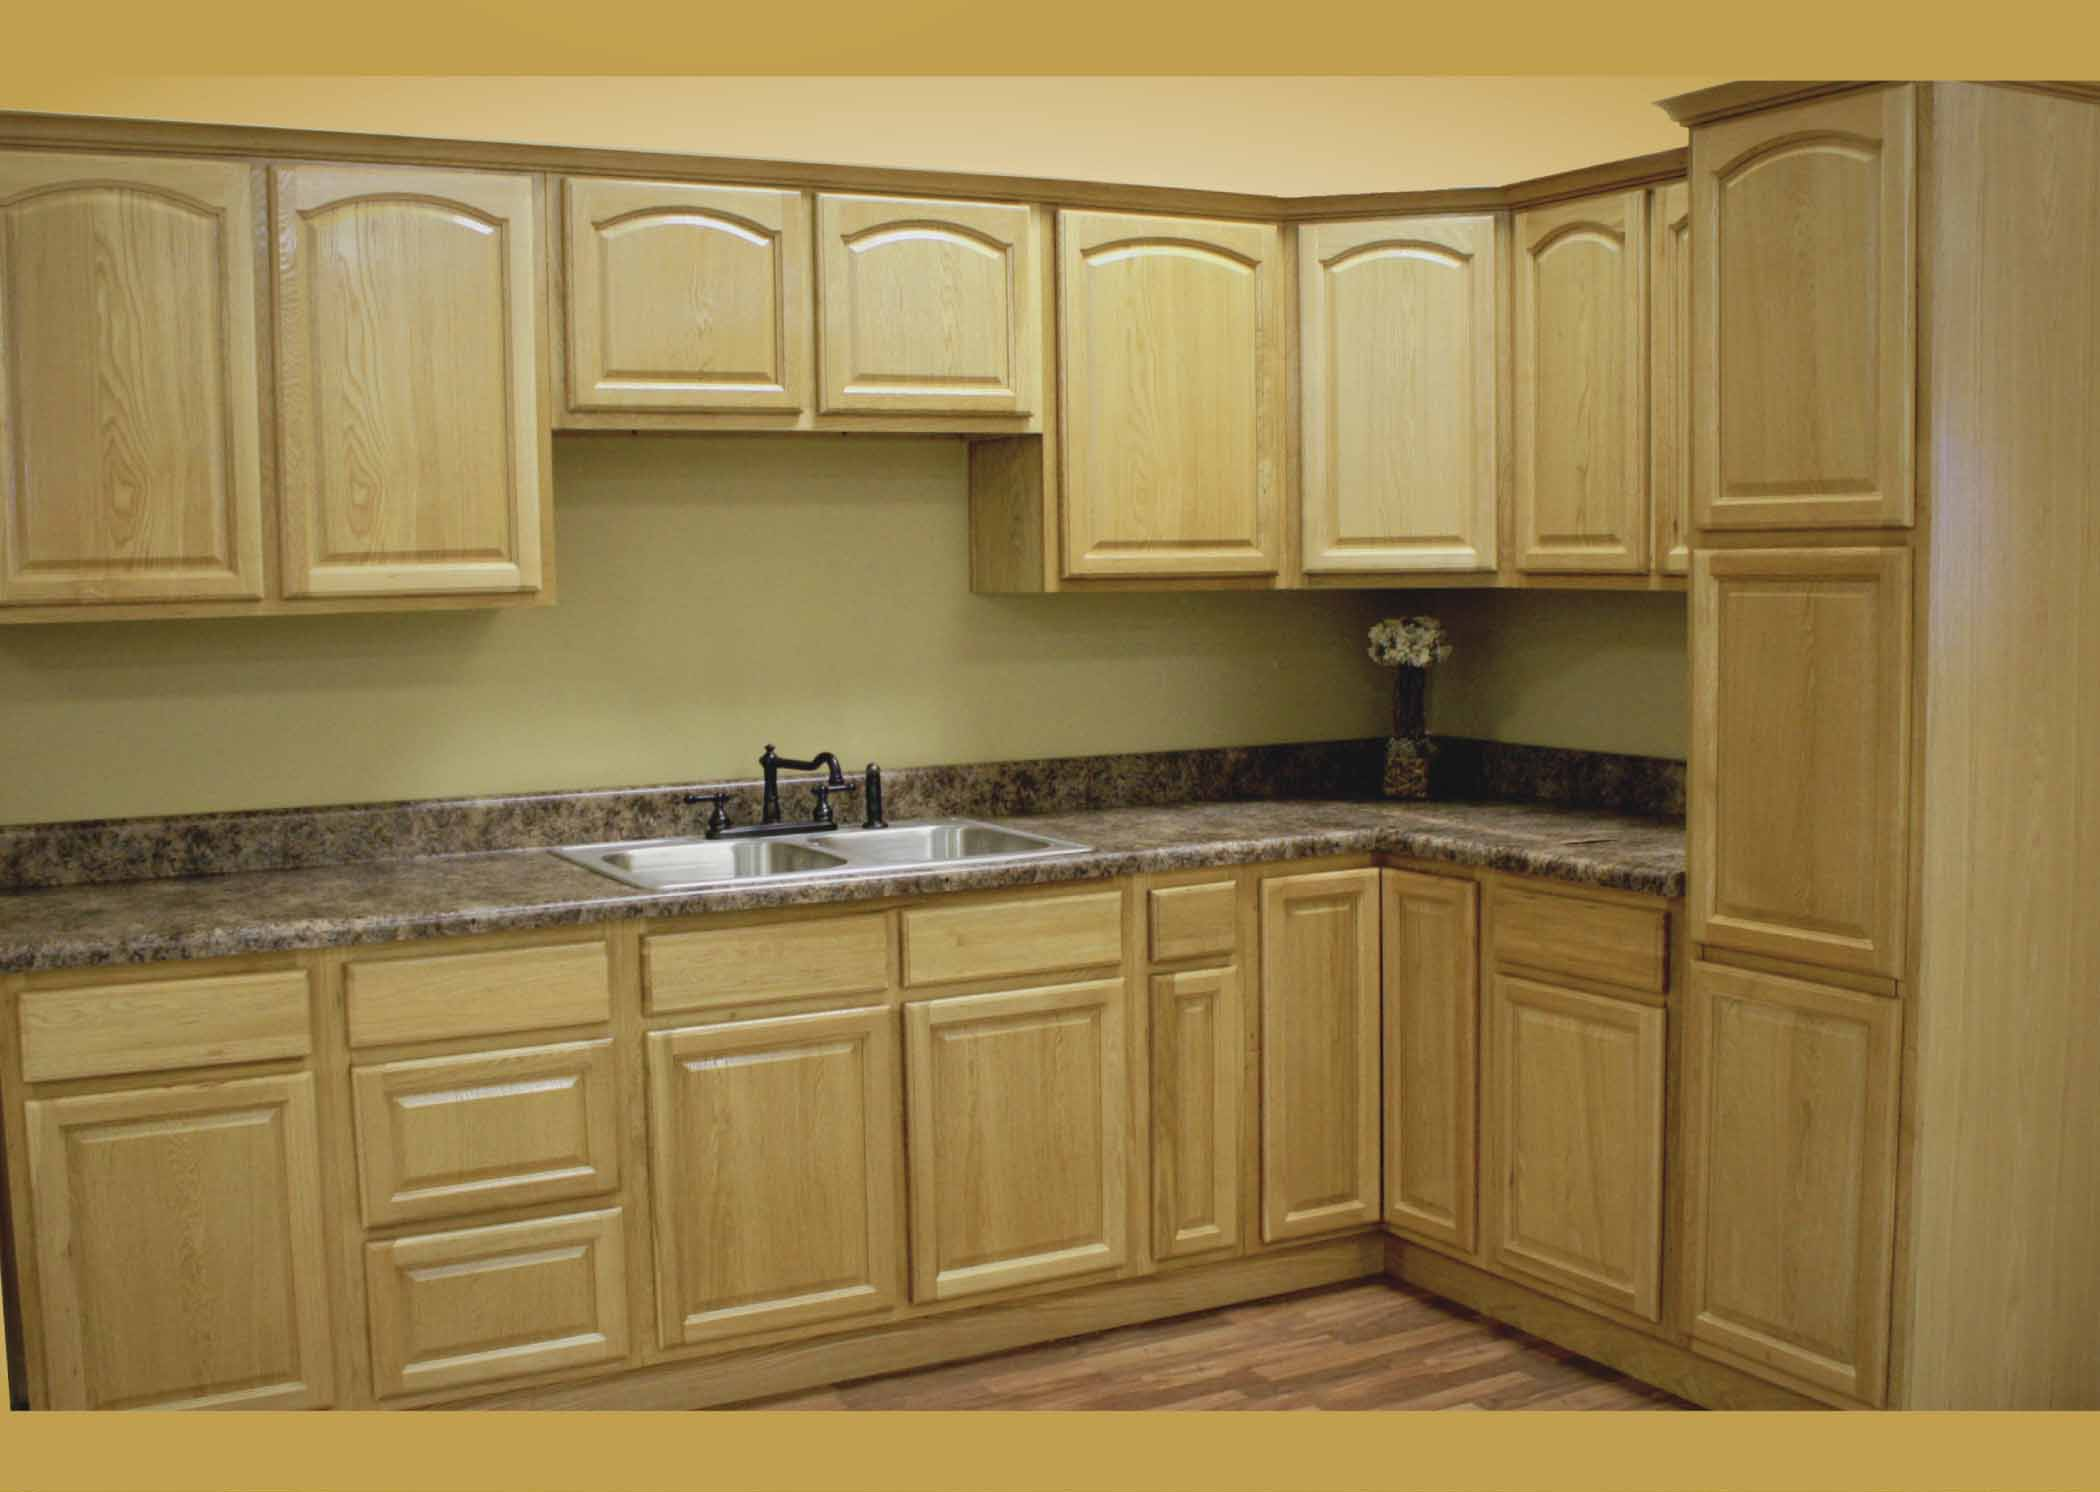 unfinished oak kitchen cabinets designs ideas in stock  new home improvement products at